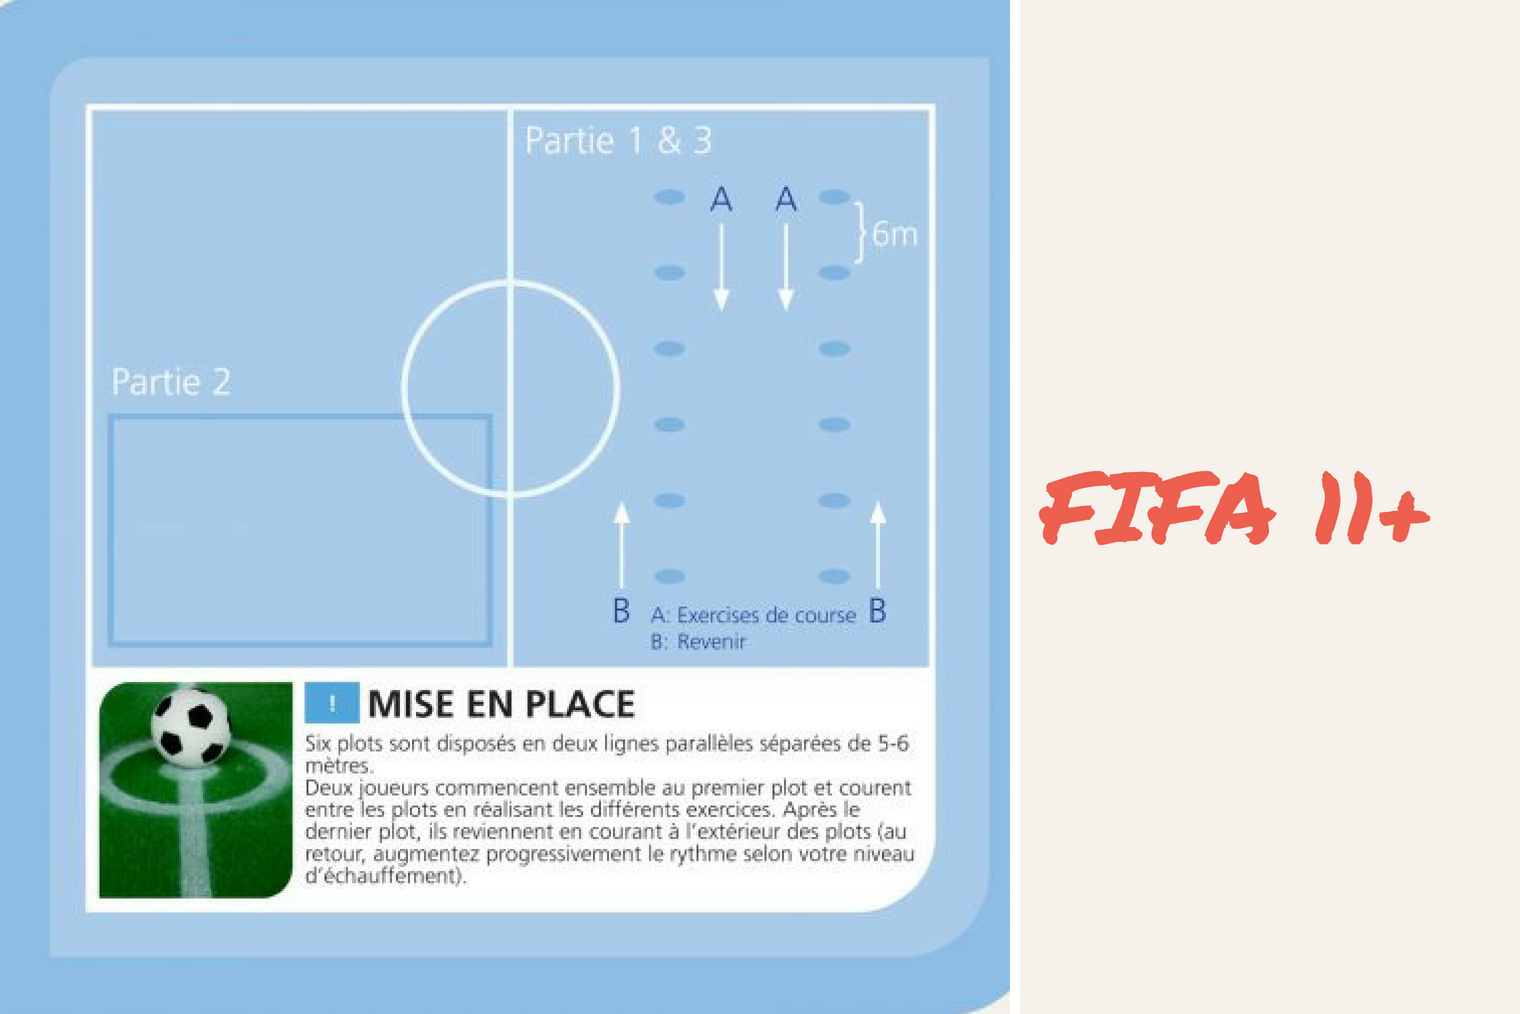 Fifa 11+ illustration